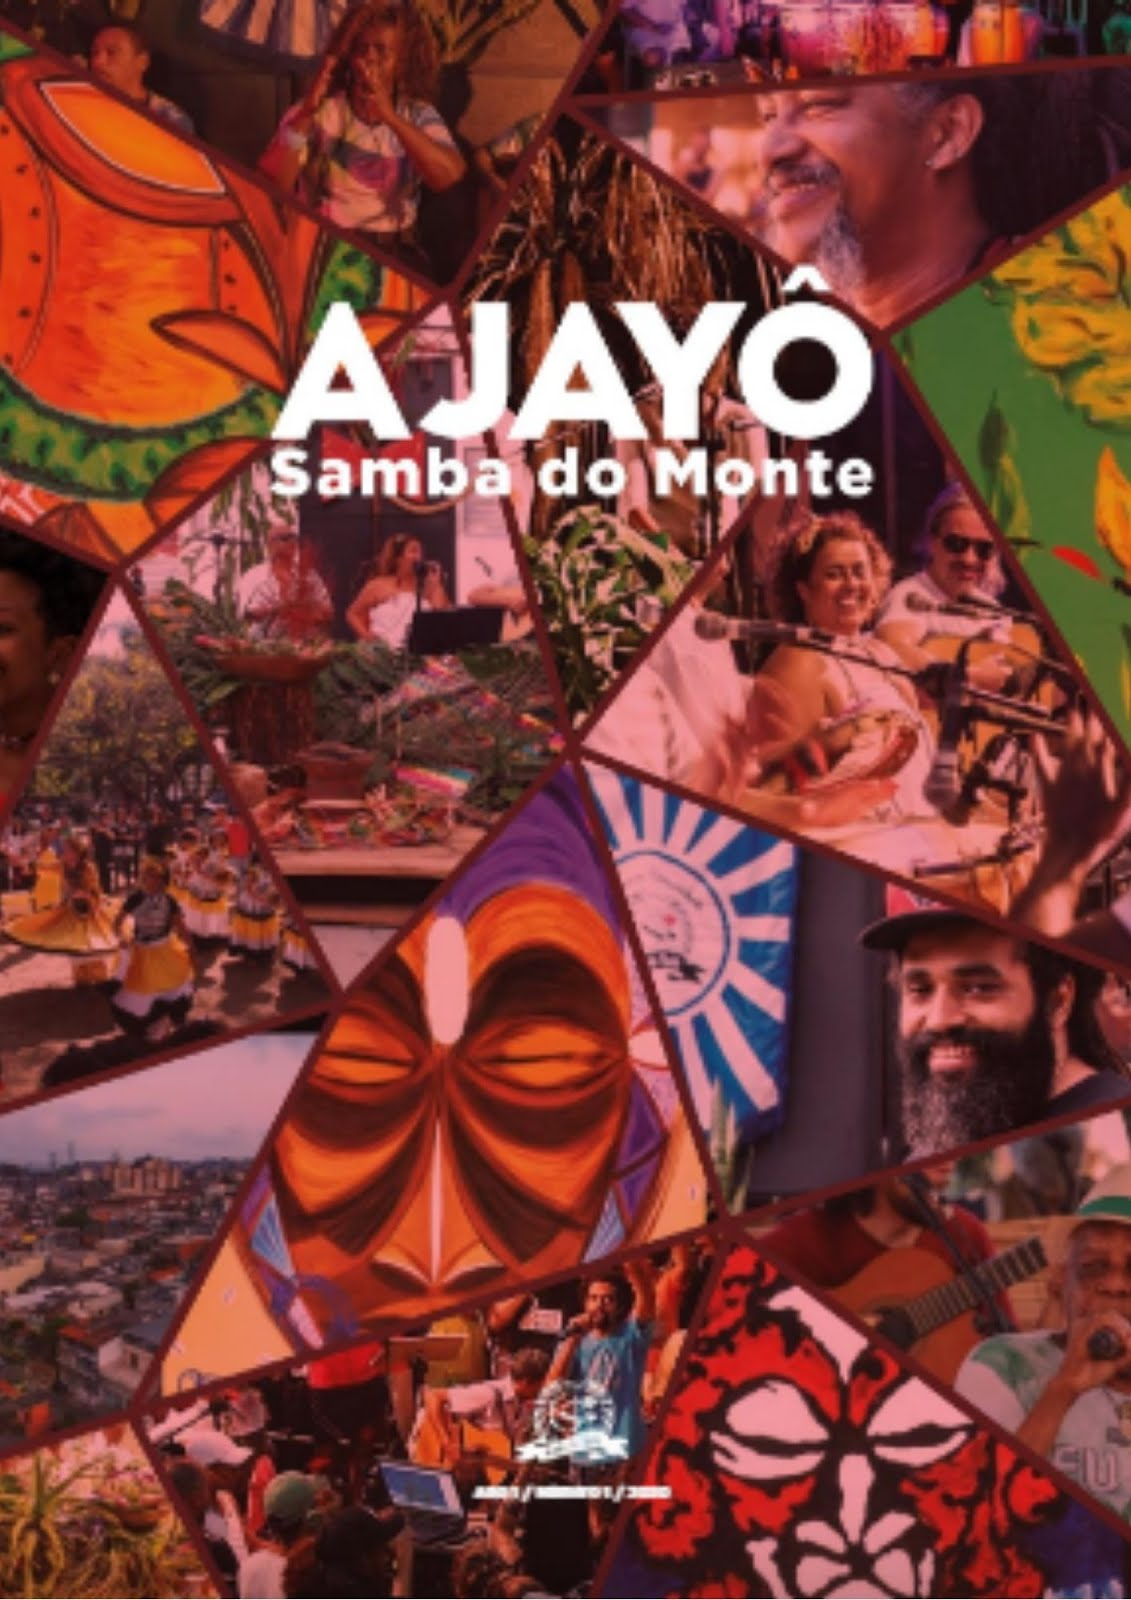 Revista Ajayo Samba do Monte